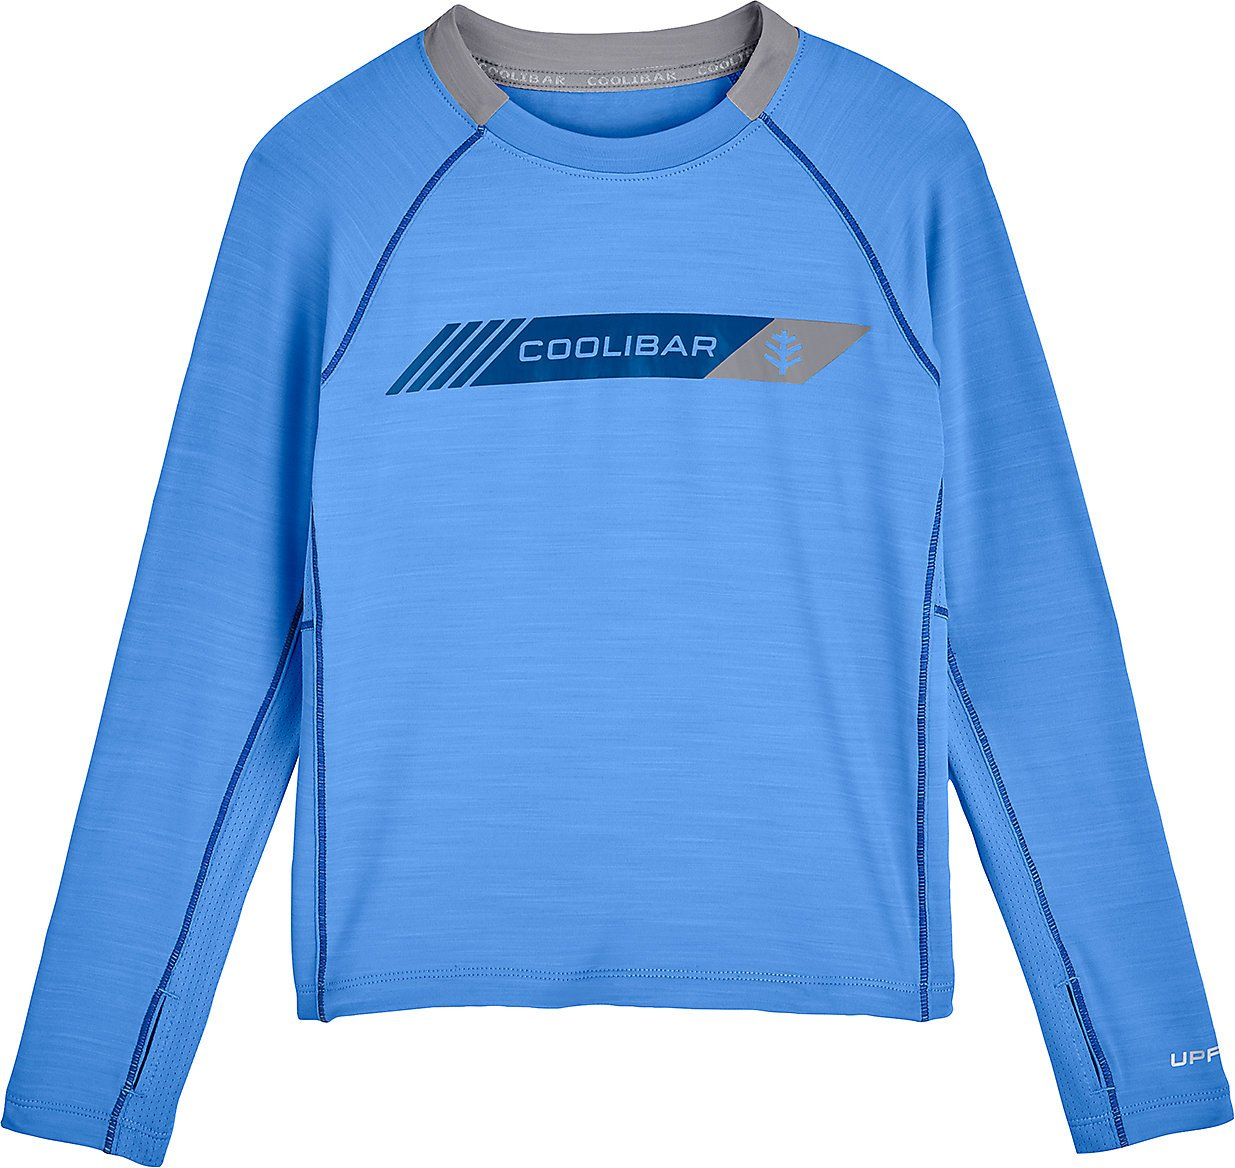 Coolibar UPF 50+ Boys' Long Sleeve Performance Graphic Tee - Sun Protective (X-Large- Spring Blue)